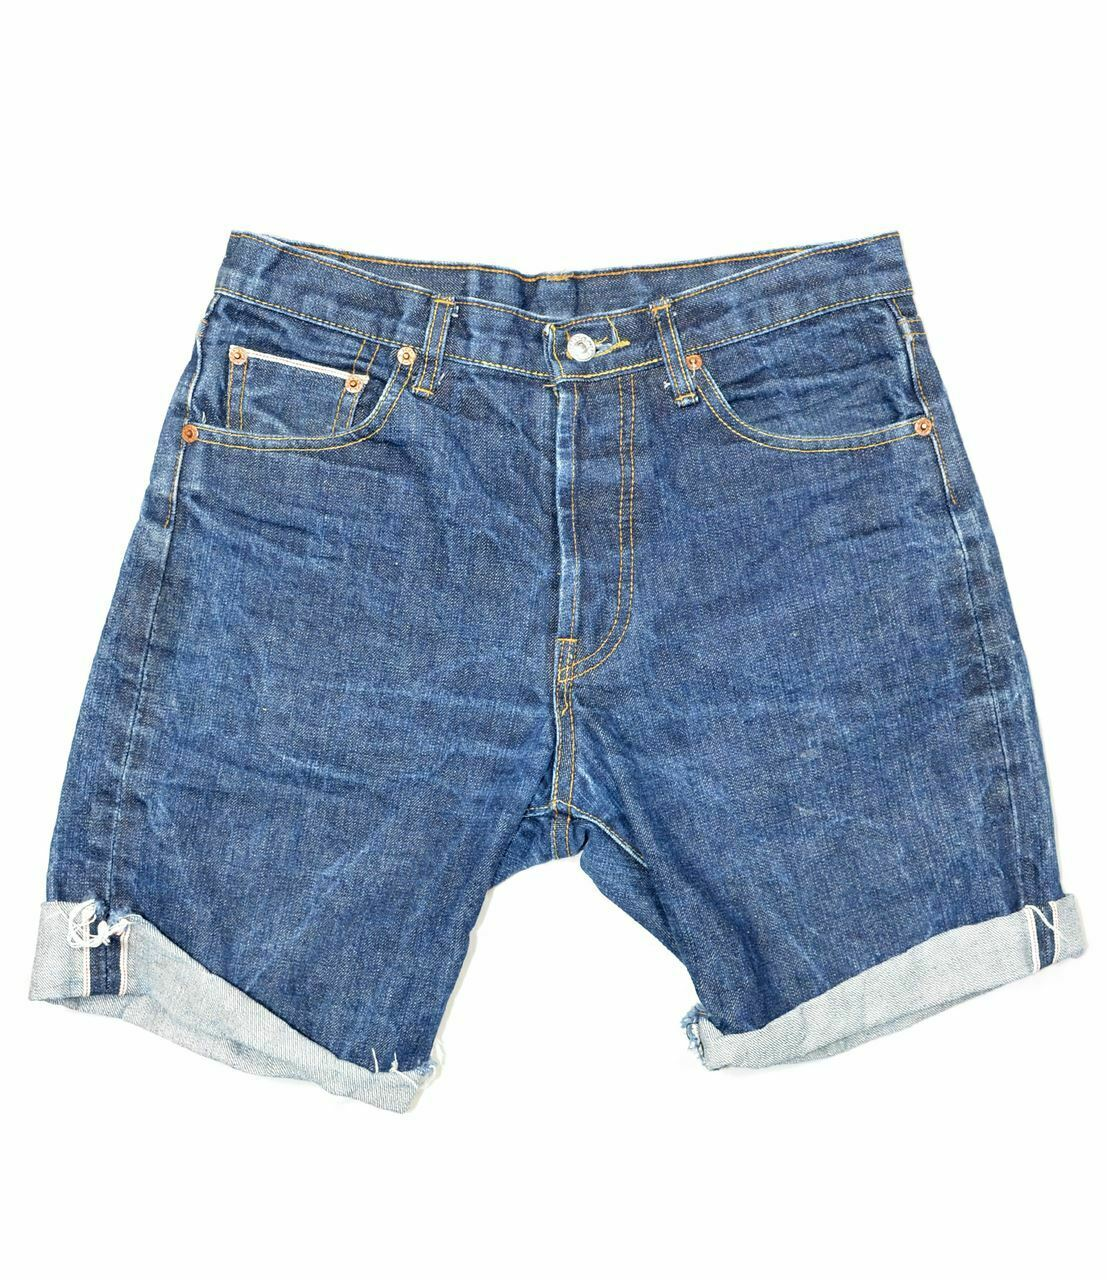 Made in USA Levis 501 Selvedge Shorts - image 1